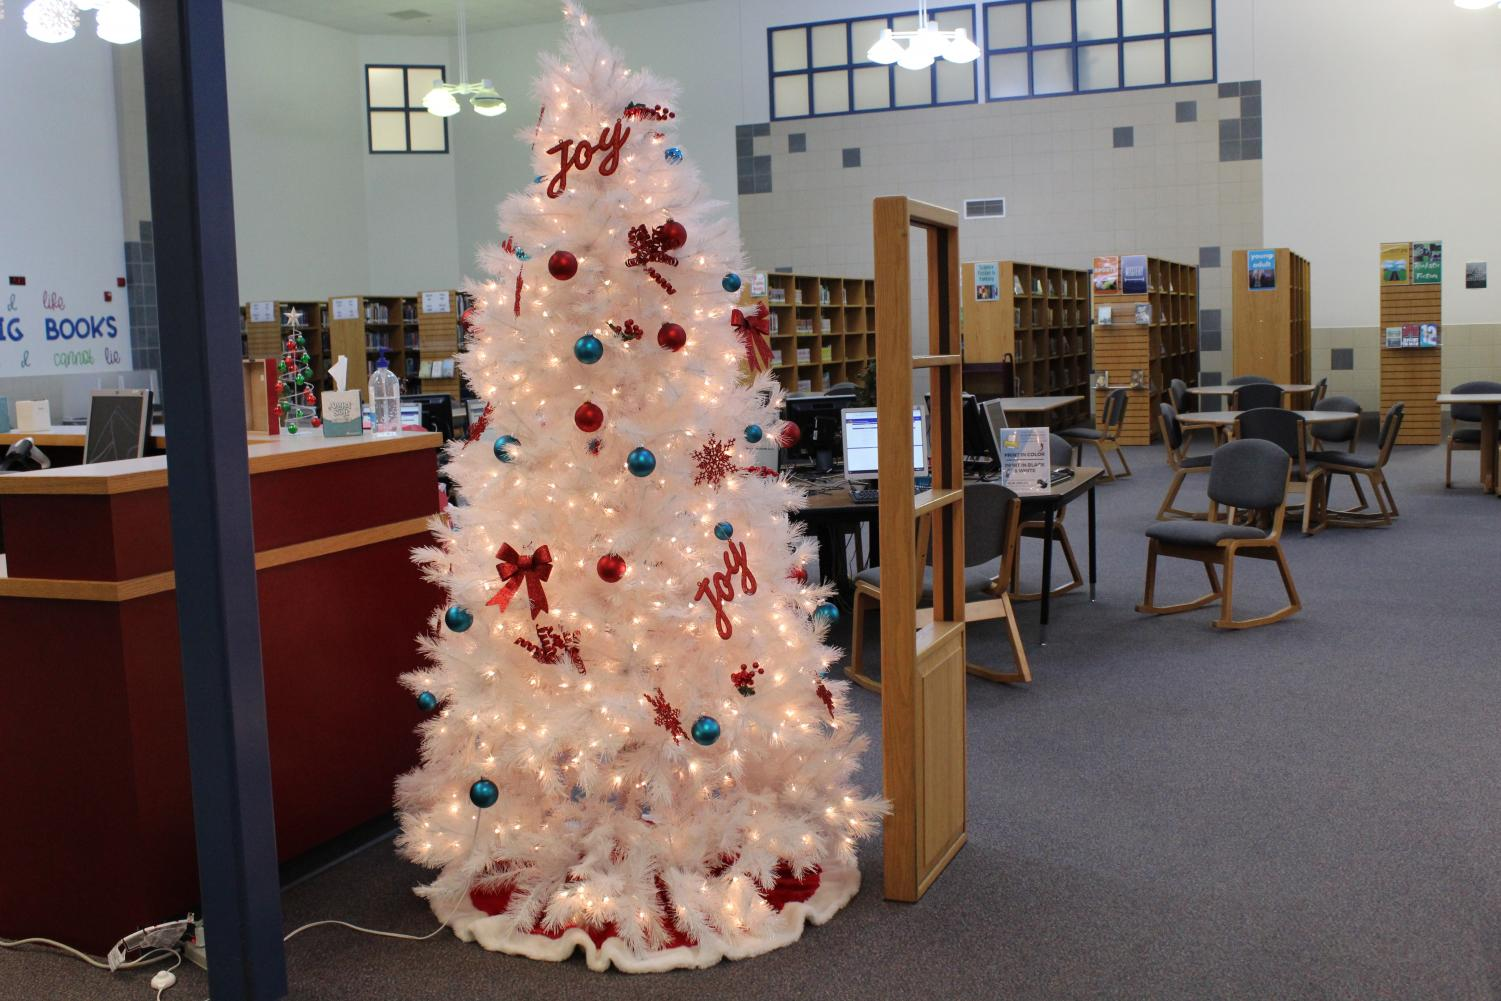 NPHS' librarians set up decorations. They had up too four trees in the library. There were also elves hidden in the books.